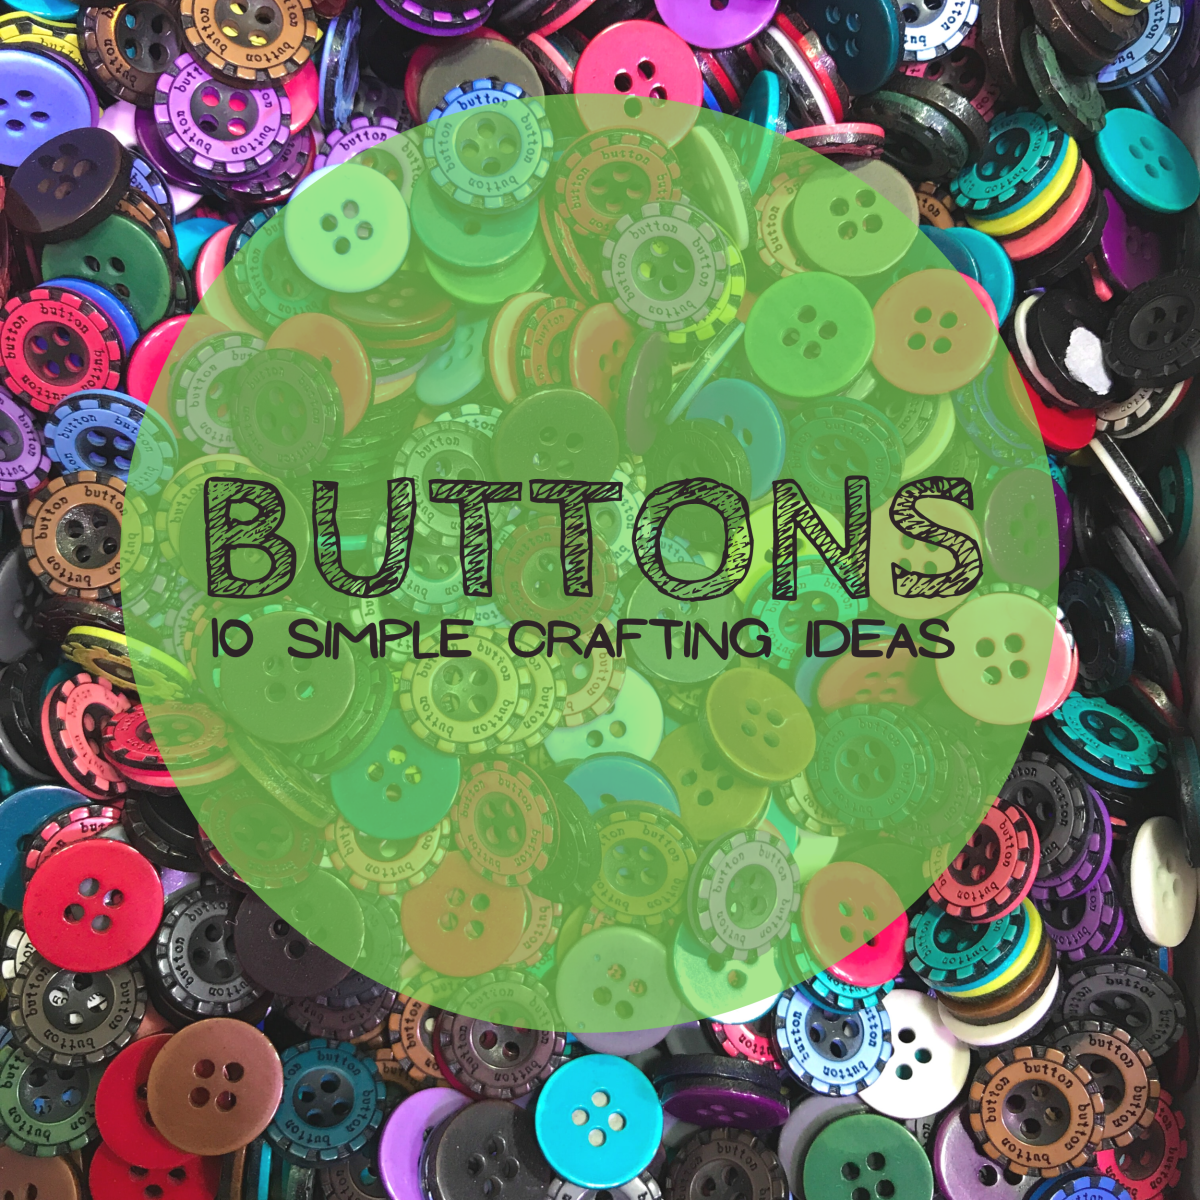 10 simple craft project ideas for buttons.